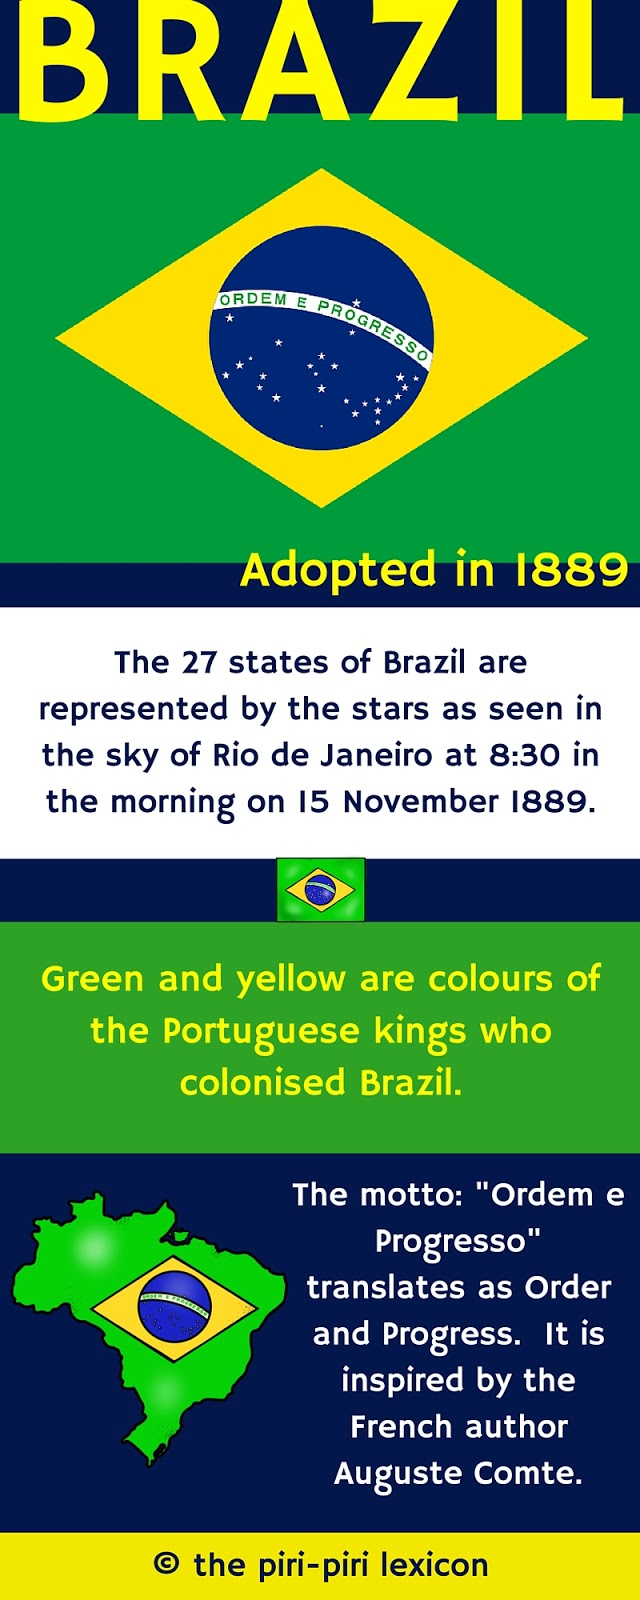 The history and meaning of the Brazilian flag